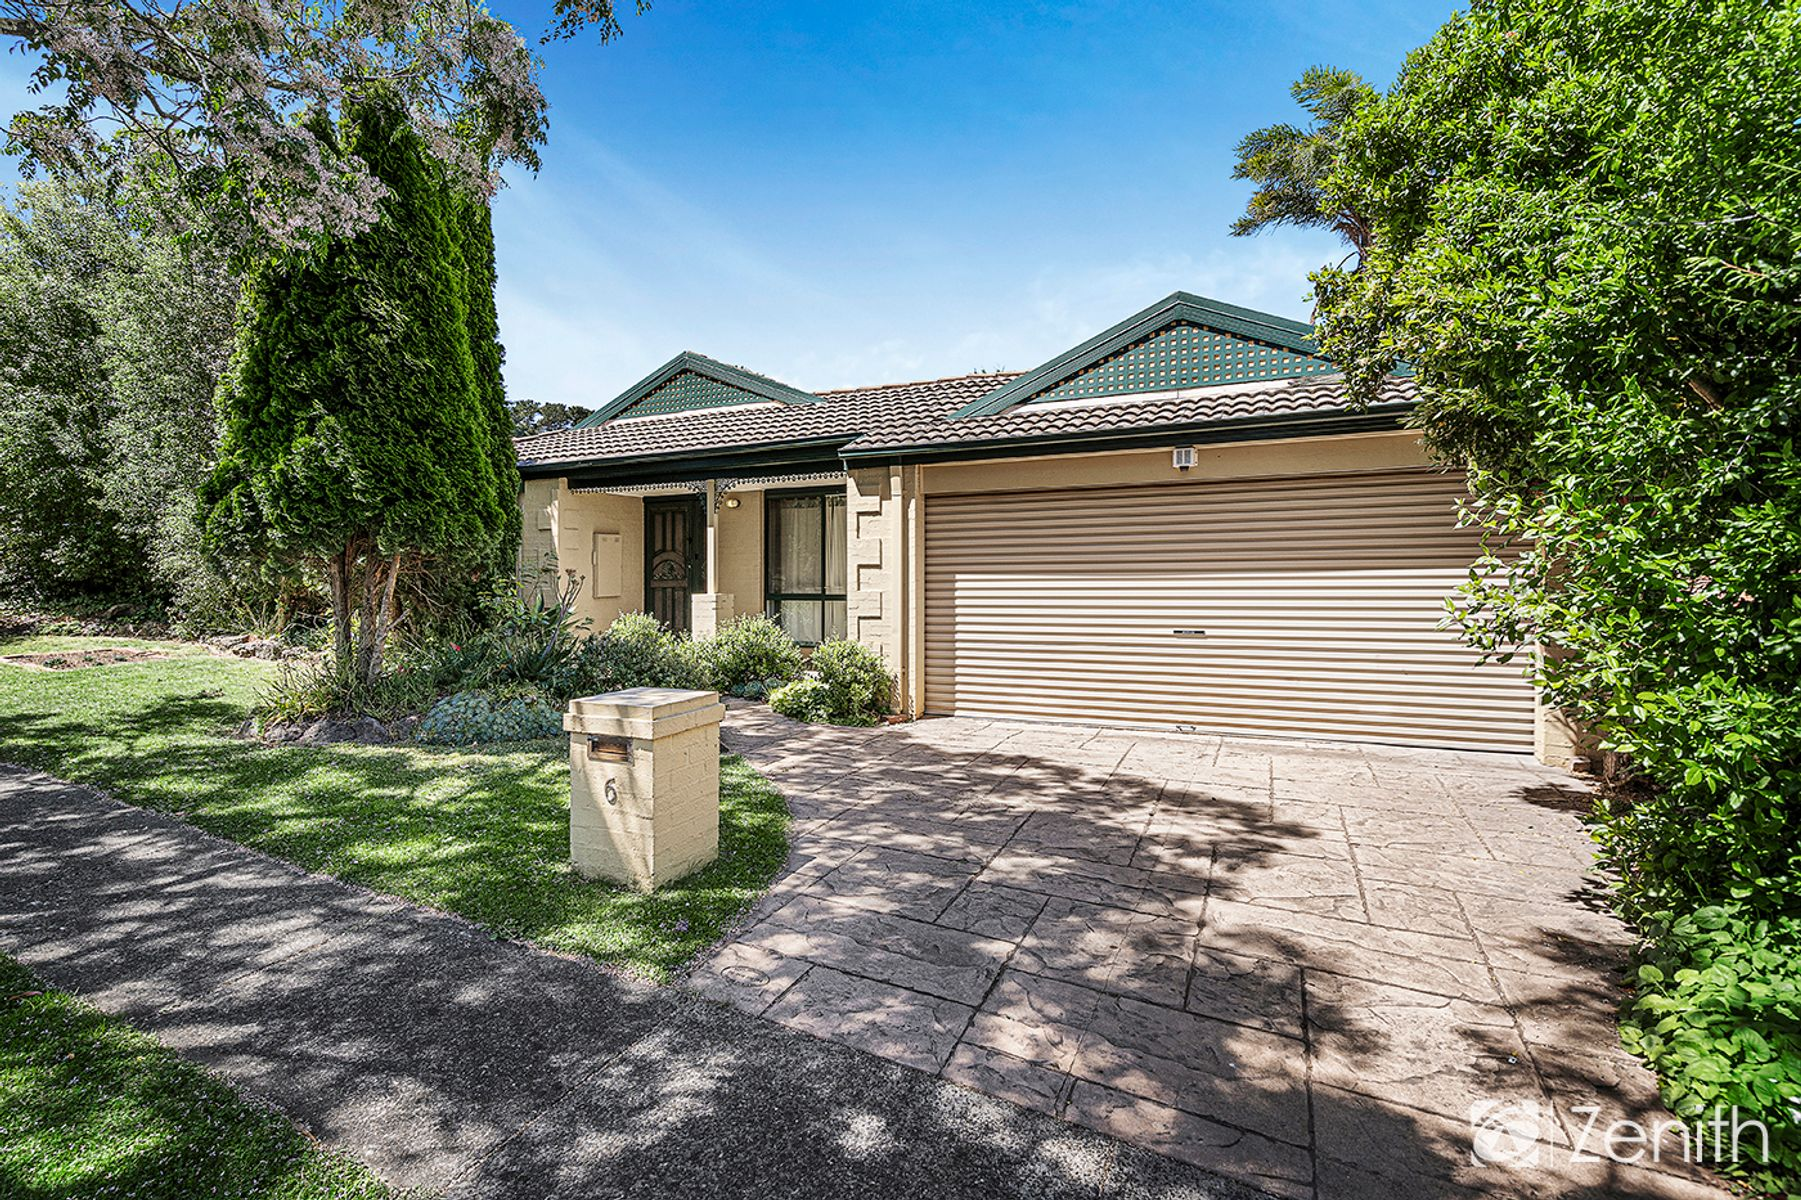 6 Jodie Place, Kilsyth South, VIC 3137